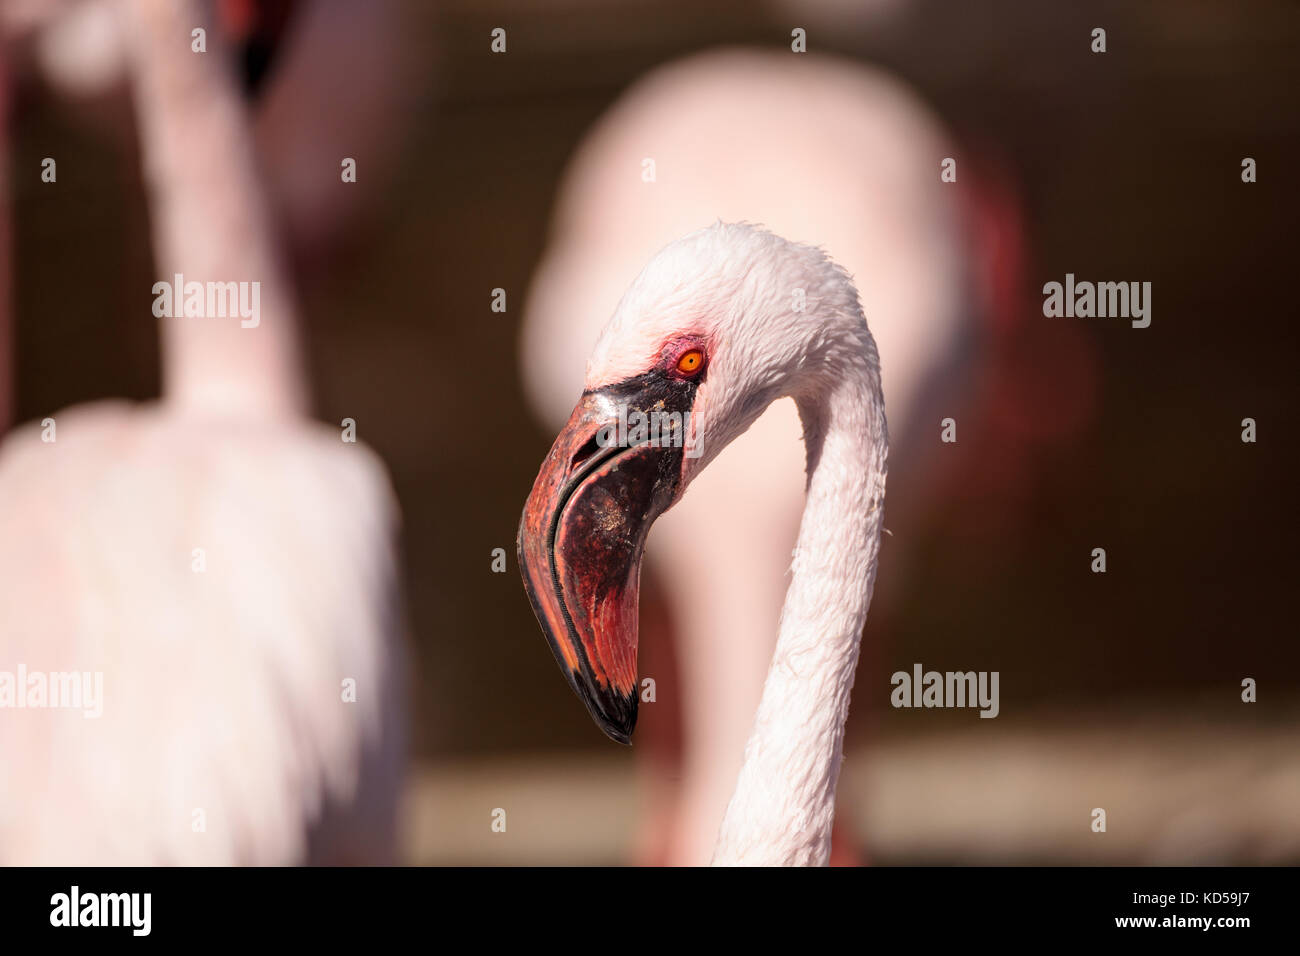 Pink lesser flamingo, Phoeniconaias minor, in the middle of a flock in India Stock Photo